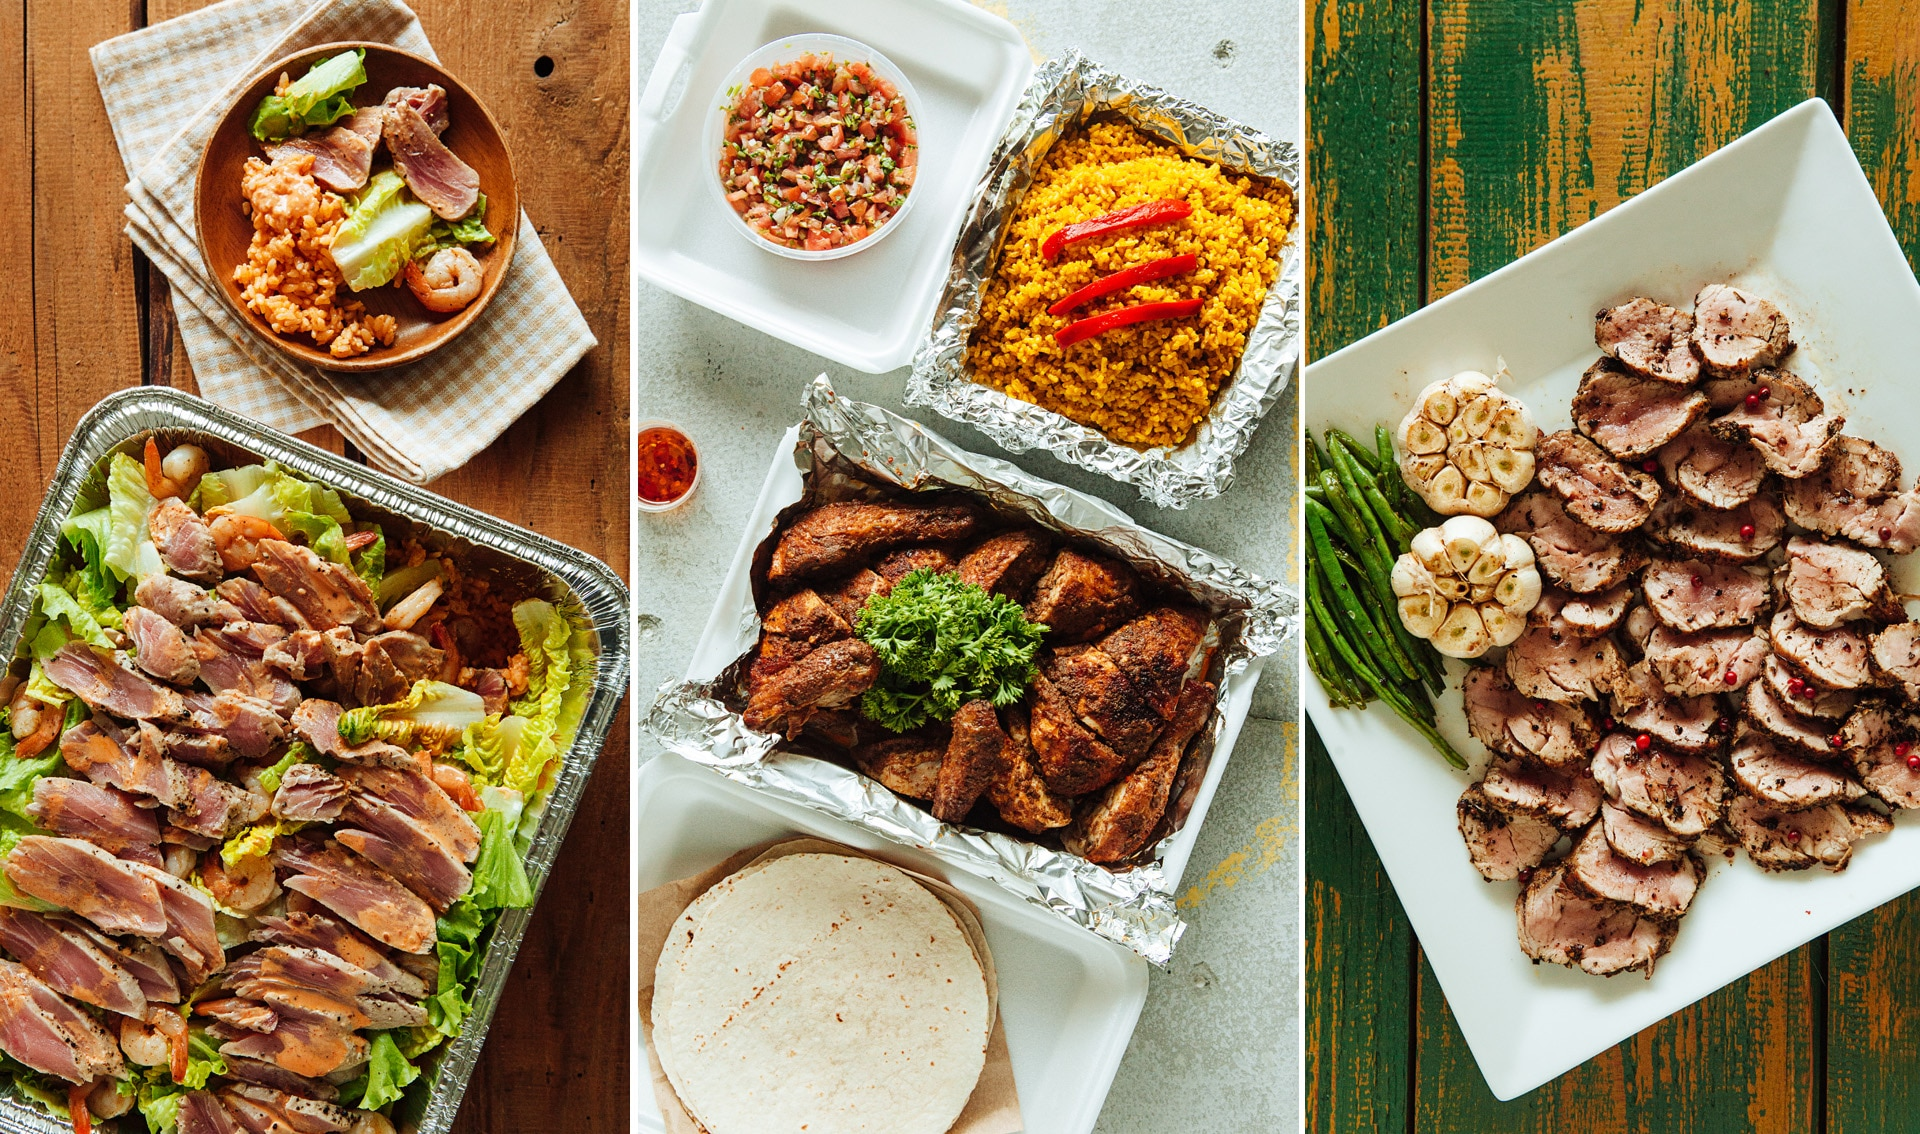 Here are 7 take out meal ideas you can bring to your upcoming here are 7 take out meal ideas you can bring to your upcoming christmas potluck party forumfinder Choice Image